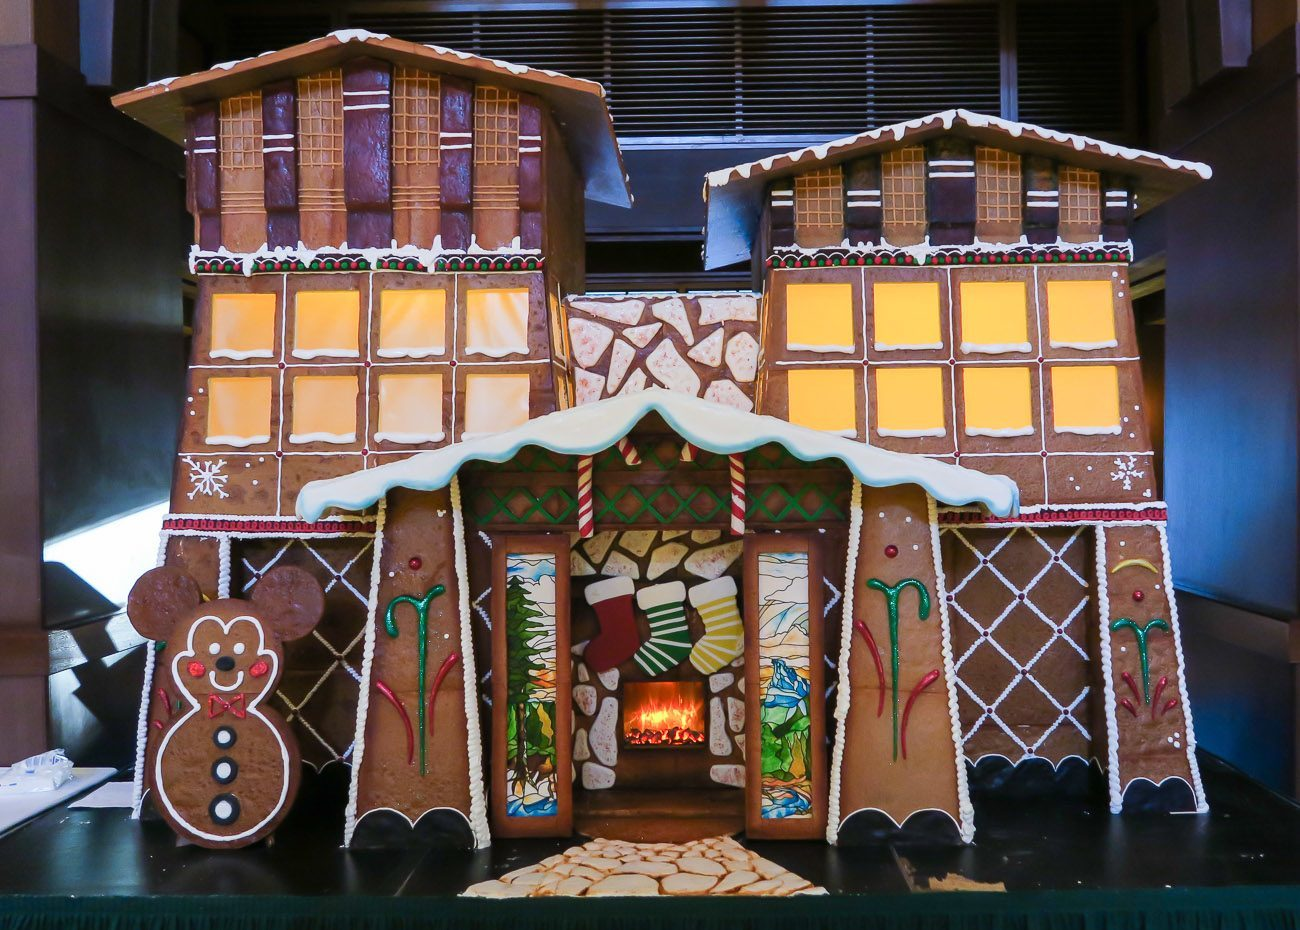 The gingerbread house at Disney's Grand Californian Hotel and Spa